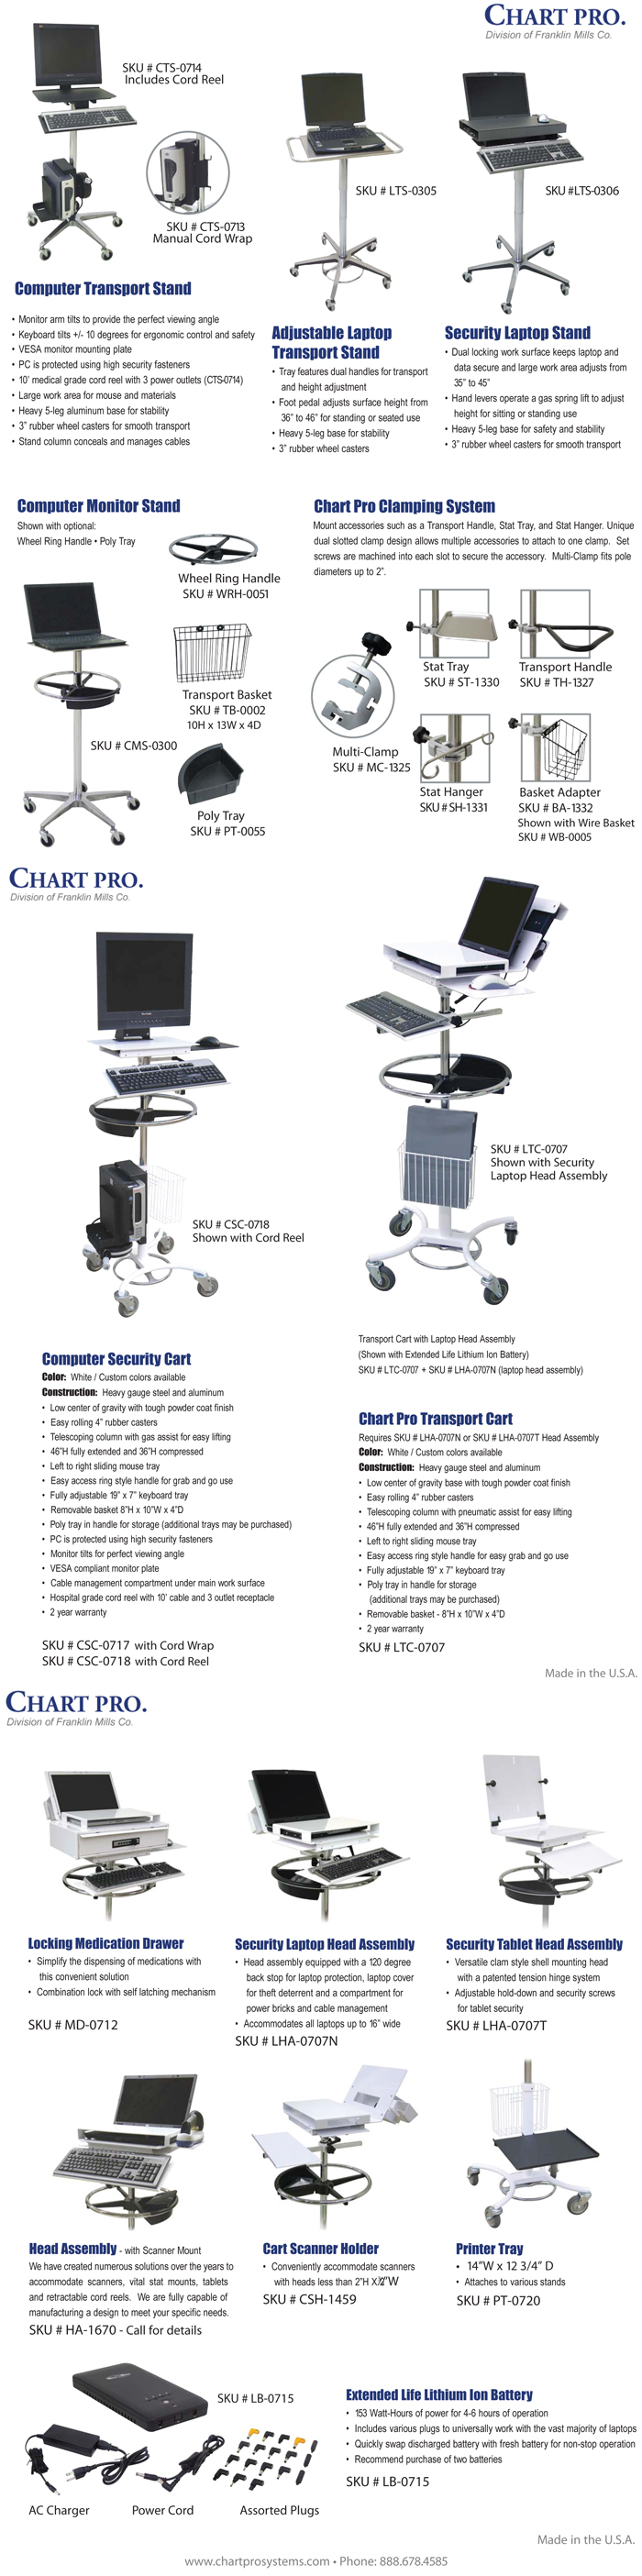 laptop-transport-cart-stand-portable-emr